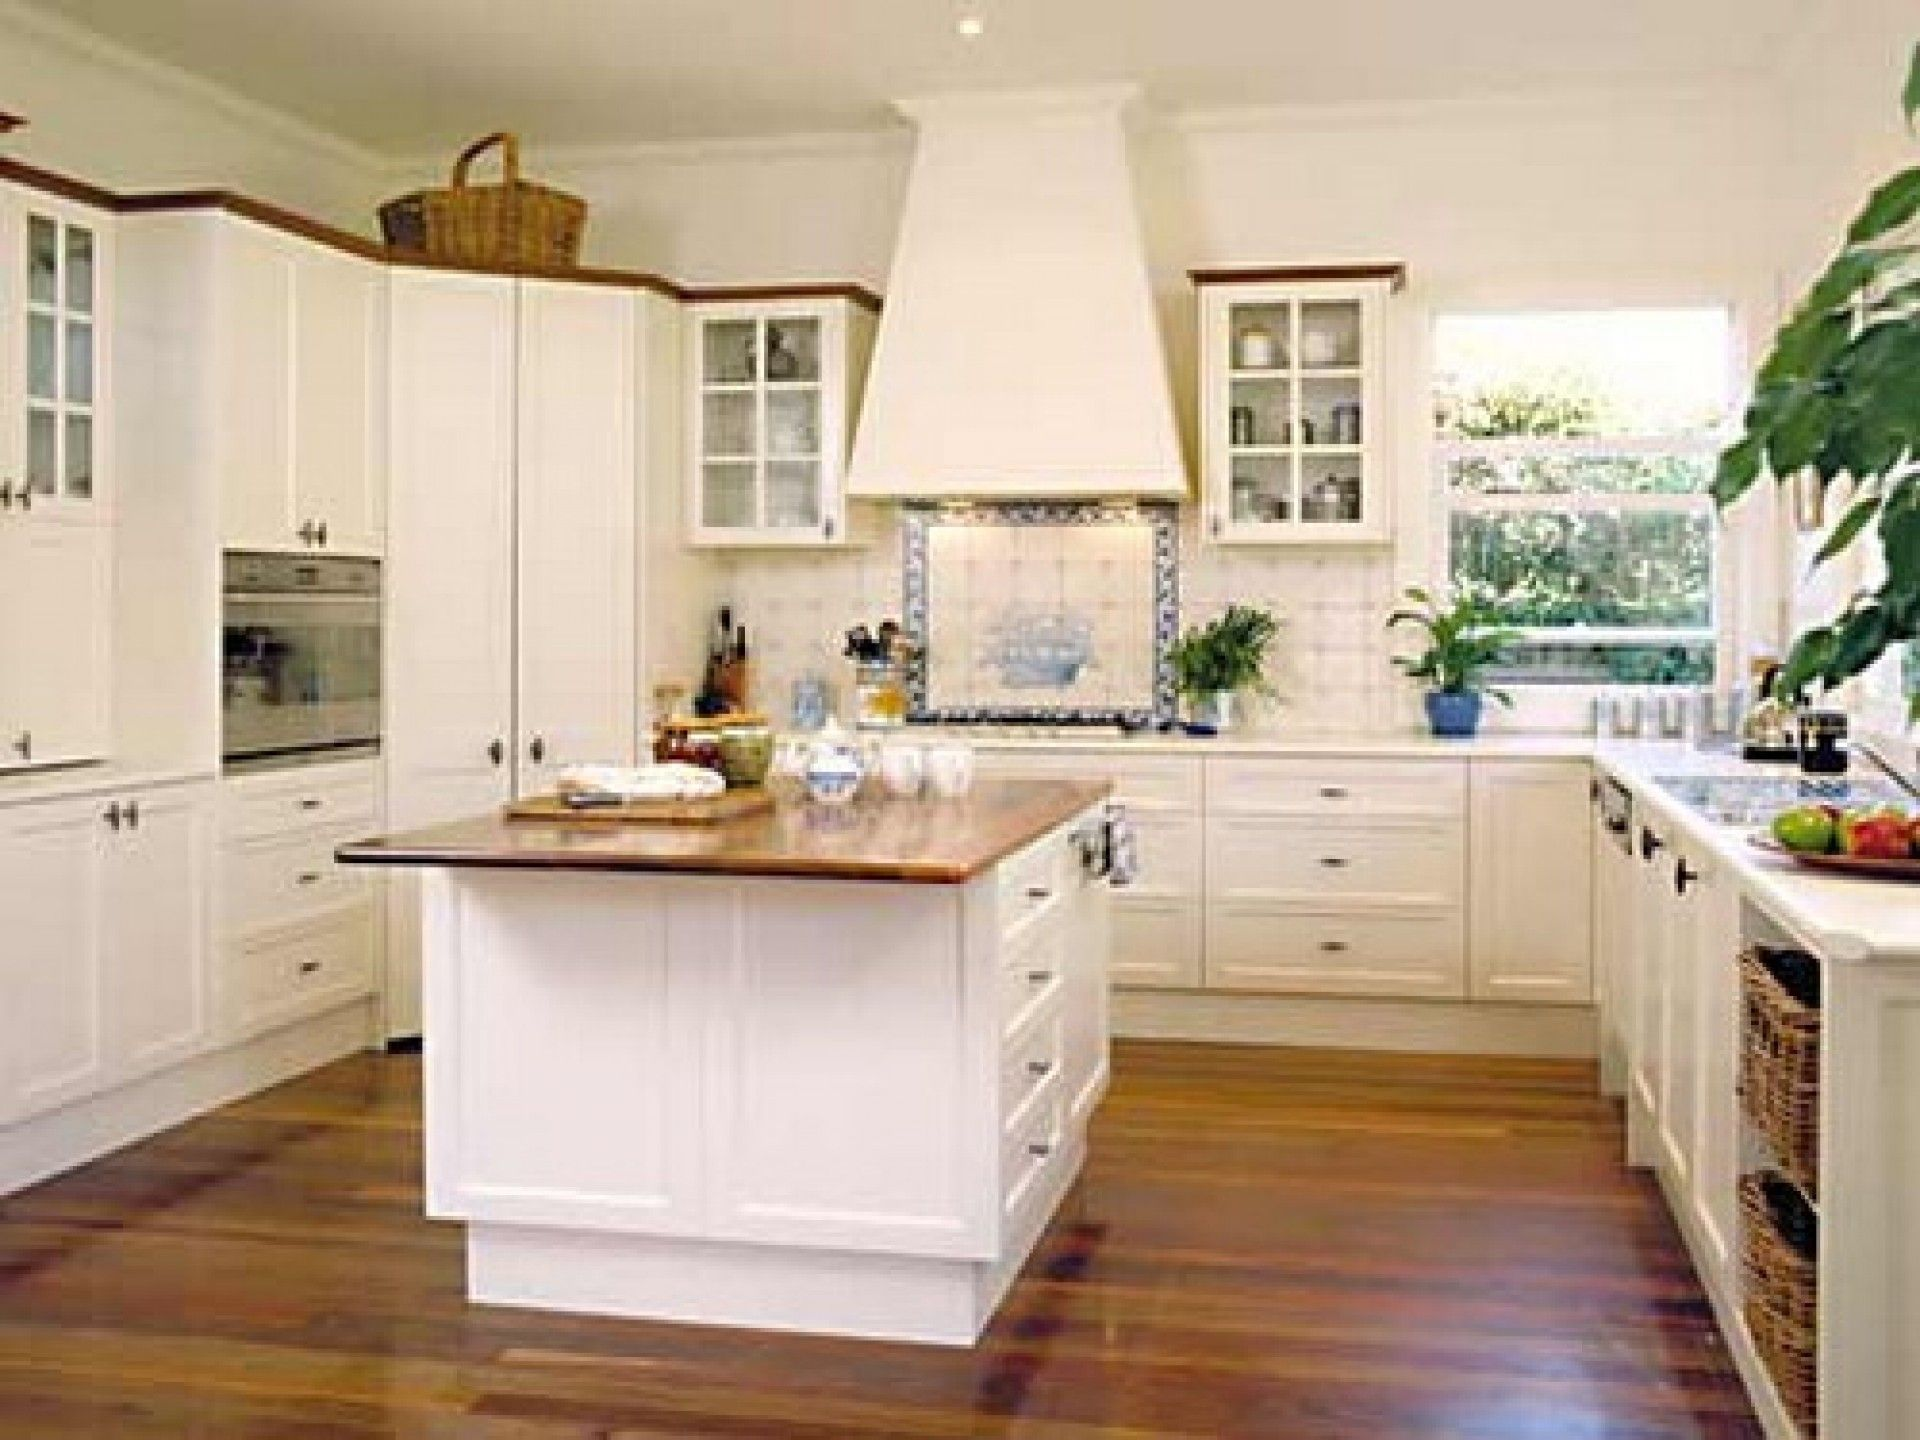 white french country kitchen - Saferbrowser Yahoo Image Search ...